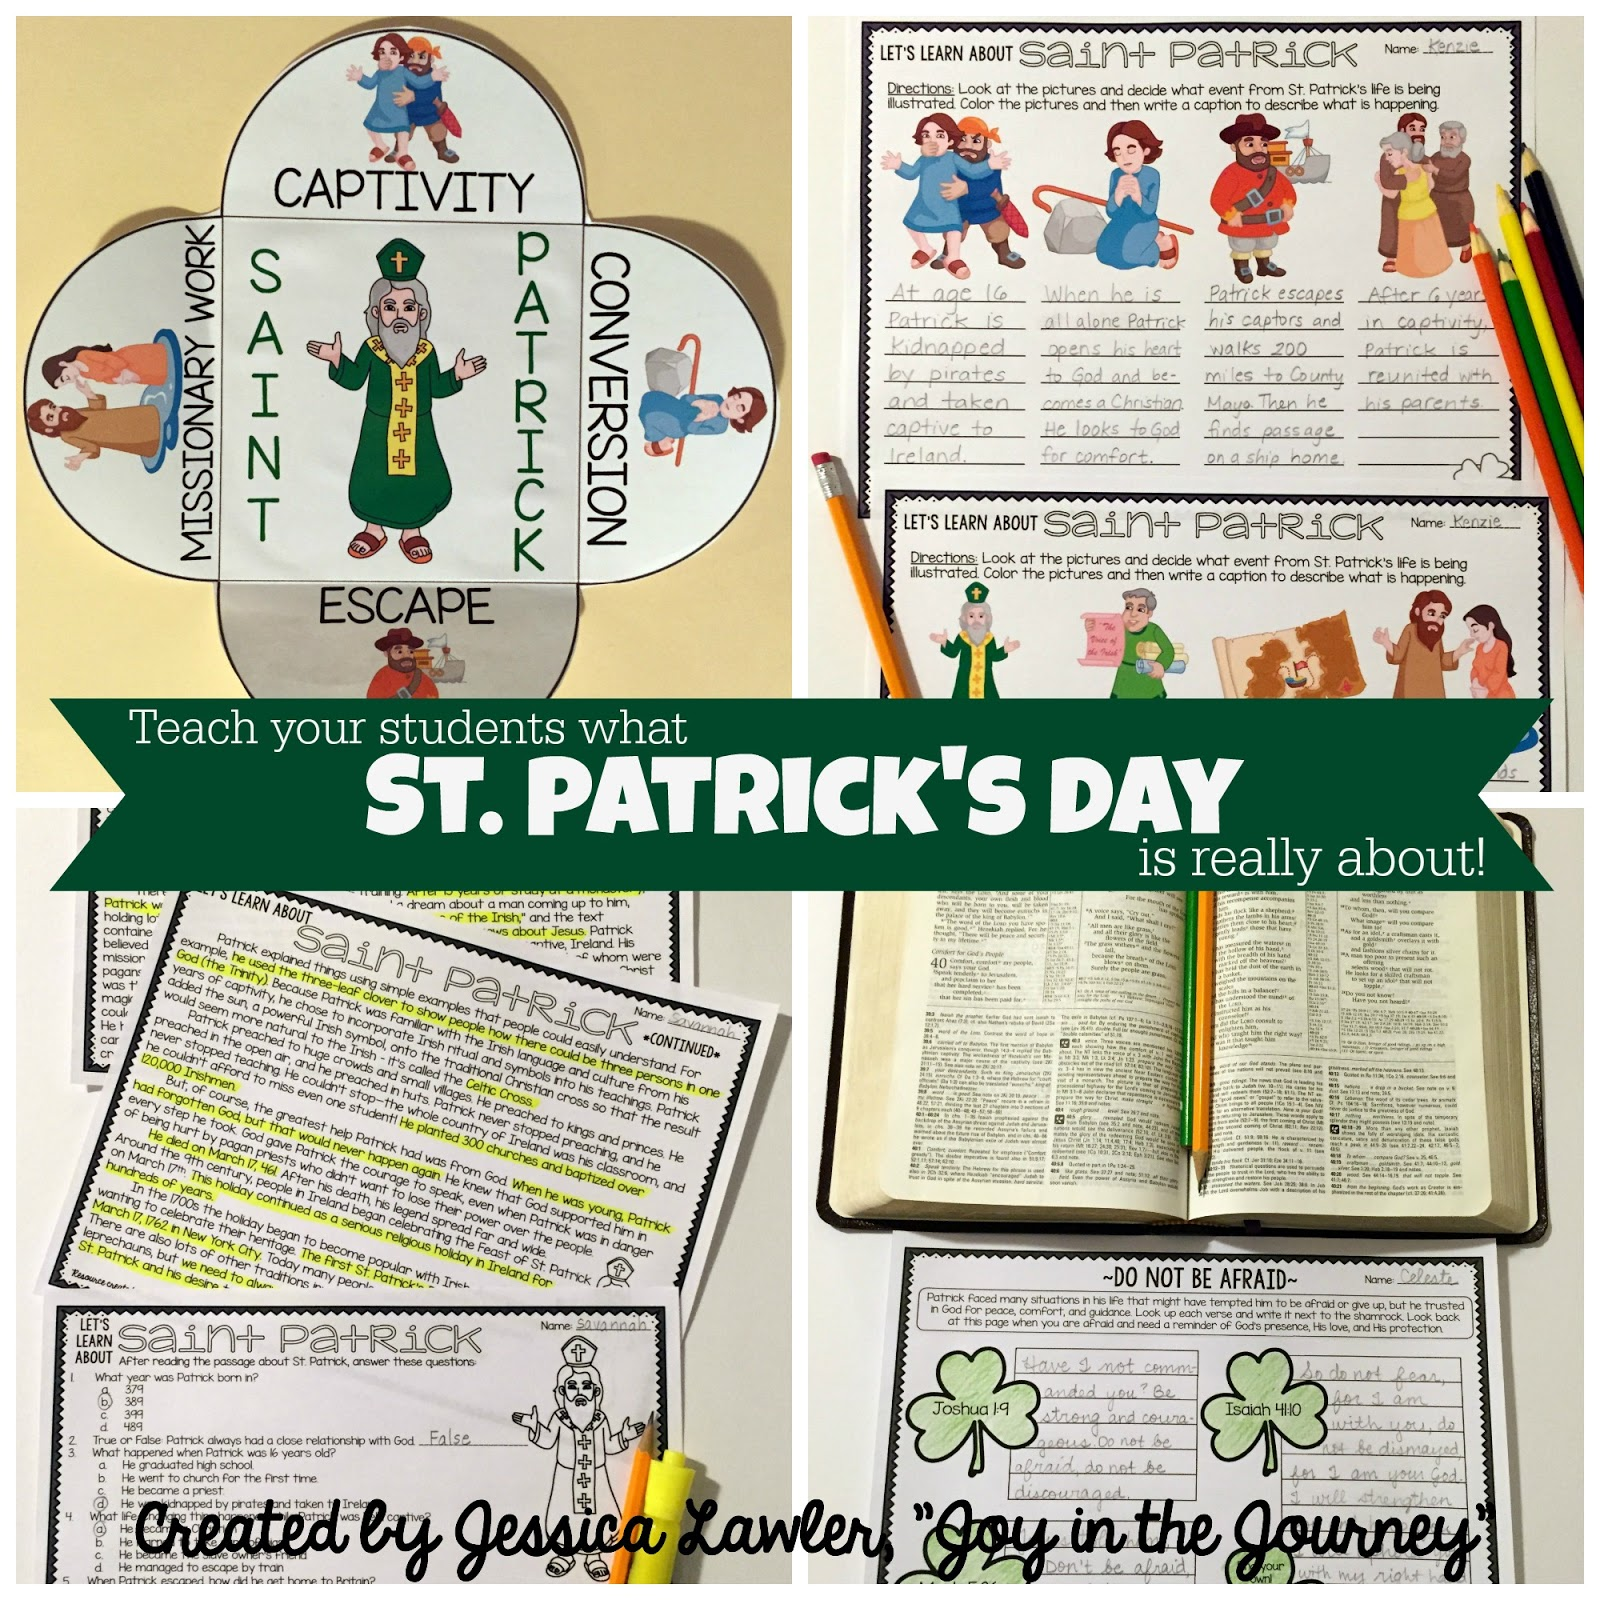 a biography of st patrick Patrick, a british bishop, preached christianity in at least some places in ireland at some time between the fourth and sixth centuries and wrote two letters: one, later known as his confessio, addressed criticisms of his ministry the other denounced the slaving activities of a group of christian slavers for taking other christians.